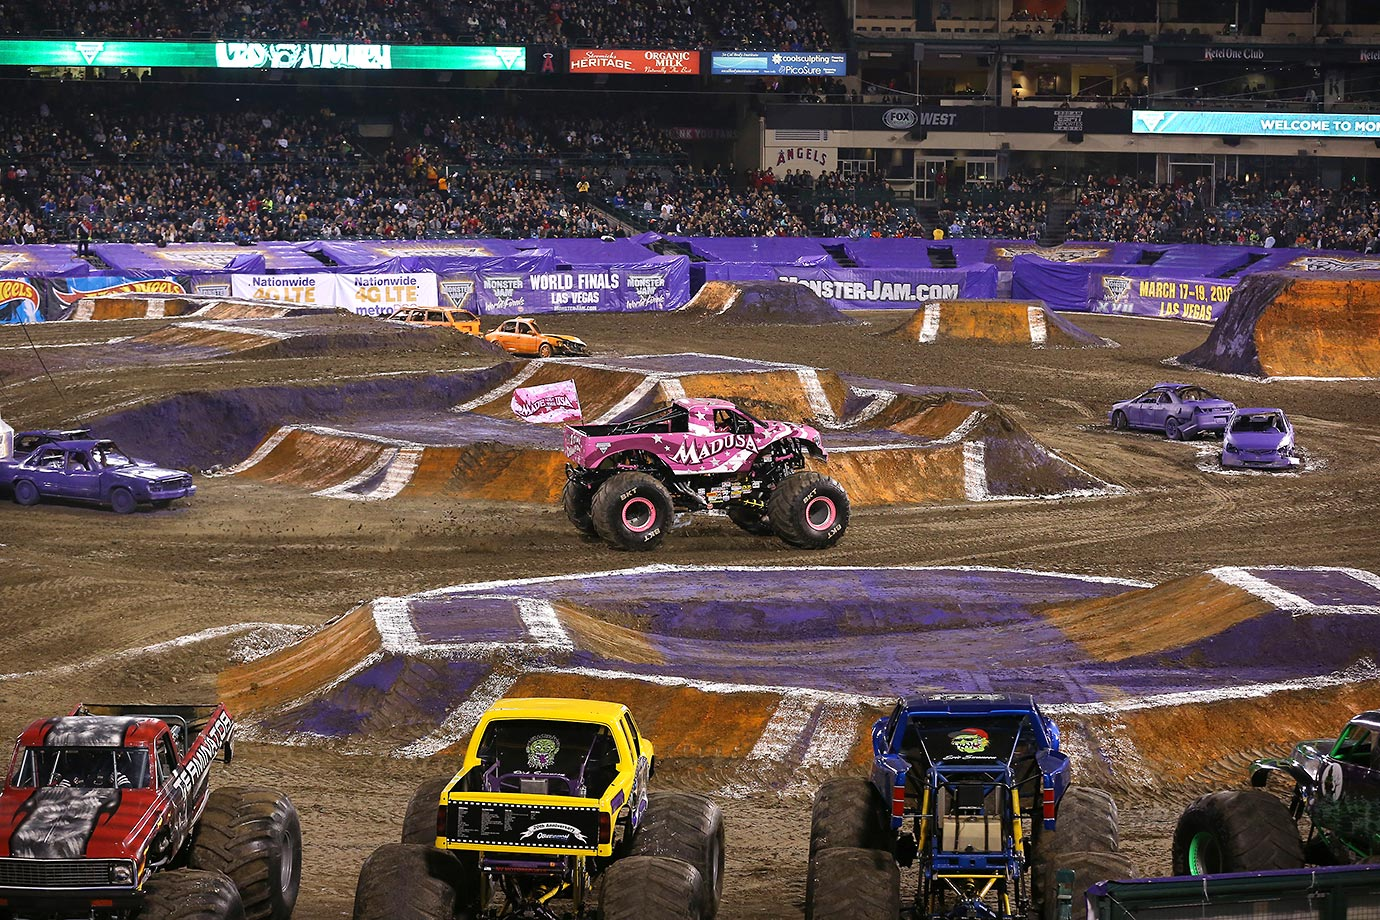 A fan favorite, Monster Truck 'Madusa' roars into the stadium to the cheers of the crowd.